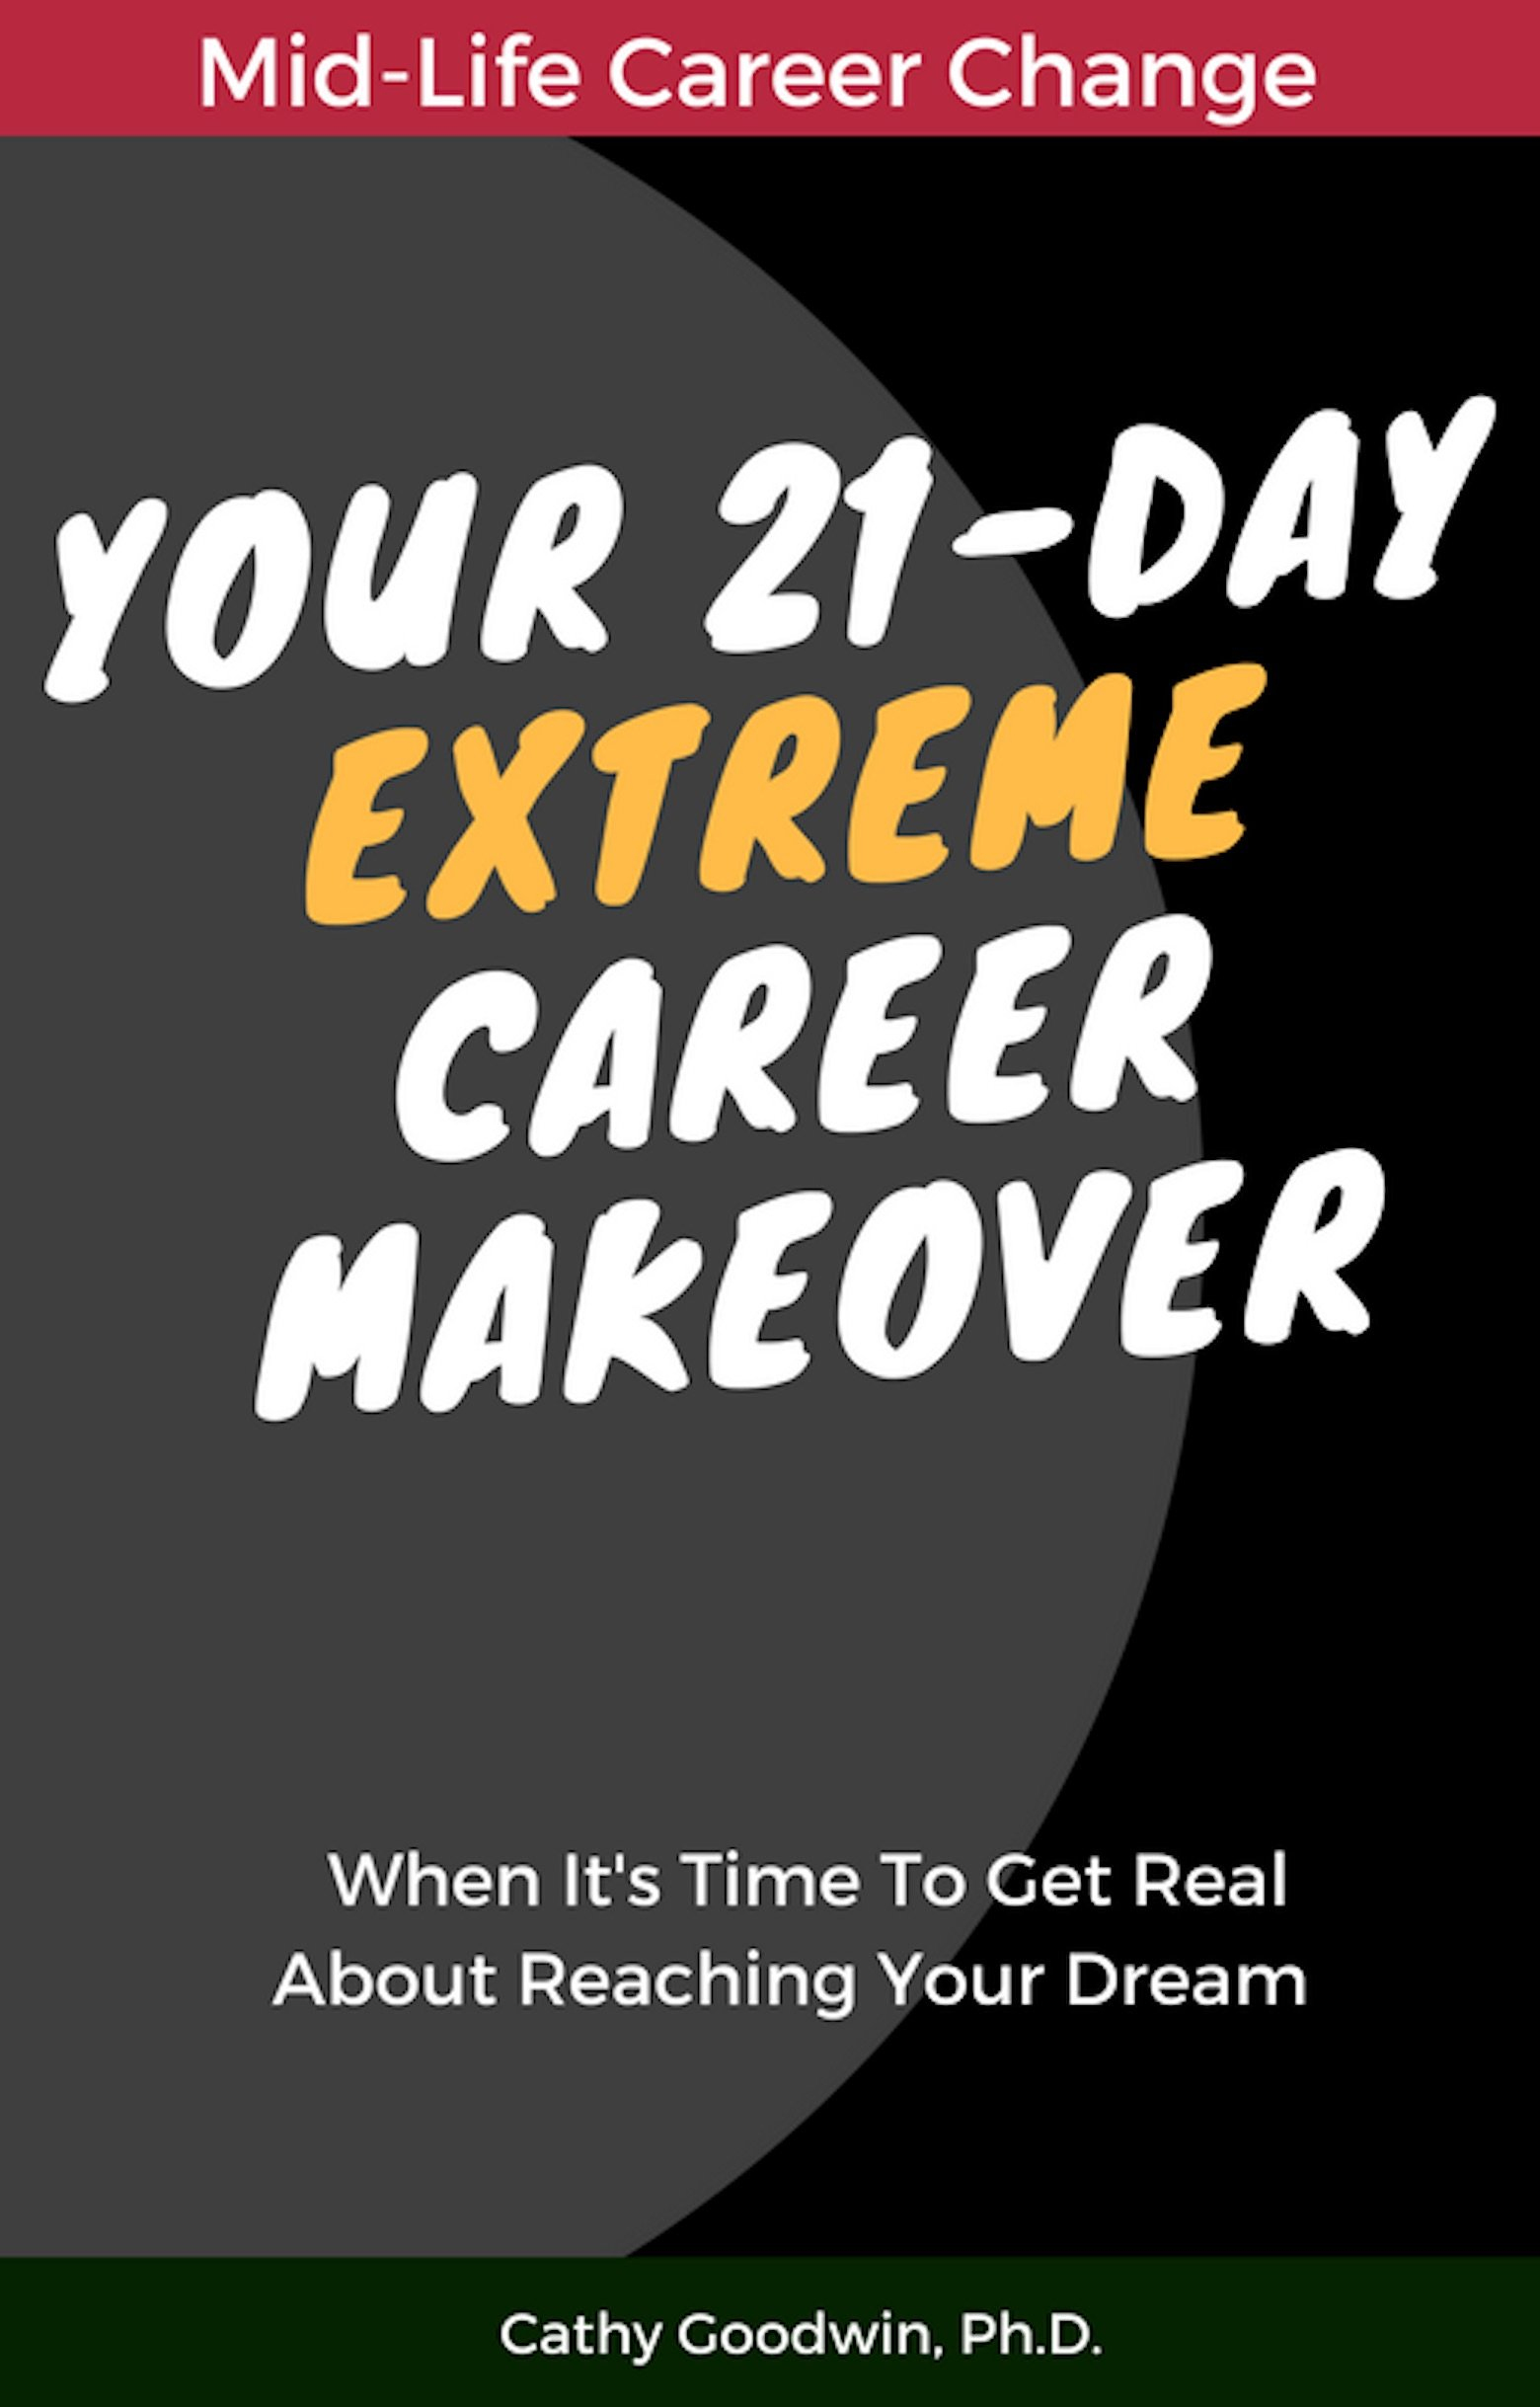 Your 21-Day Extreme Career Makeover: When It's Time To Get Real About Reaching Your Dream (Midlife Career Change Book 2)